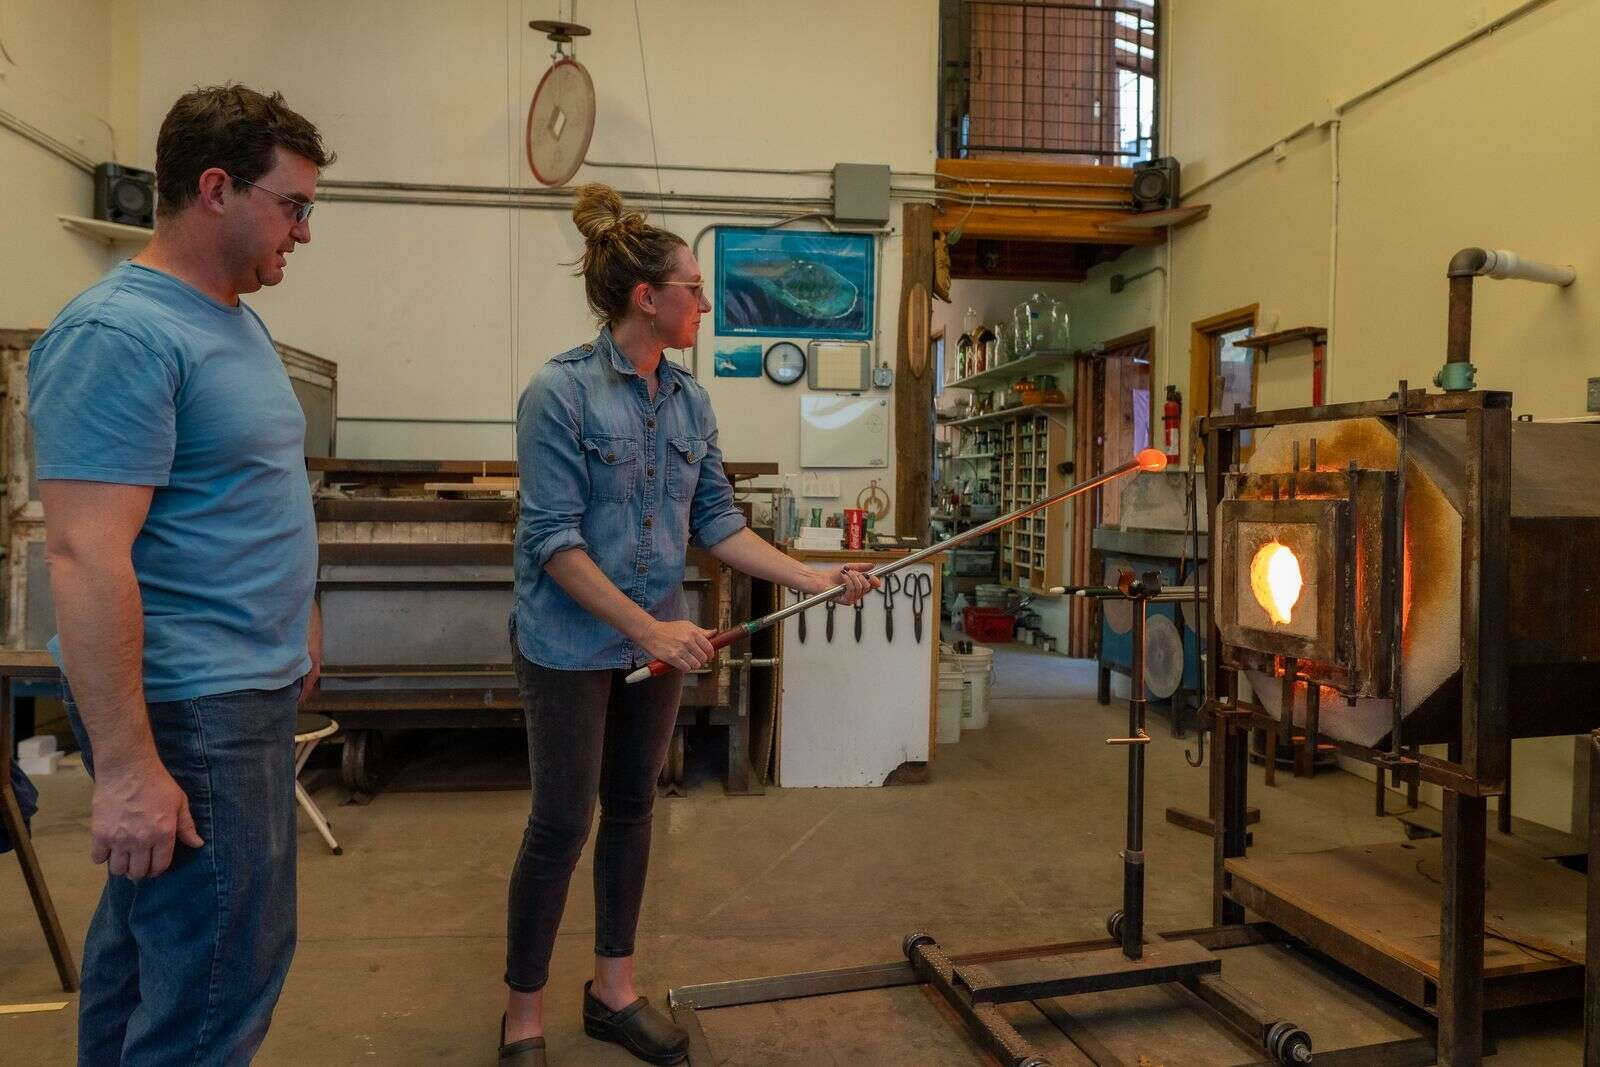 Moving hot glass around the hot shop requires constant rotation. | Craig Turpin/Rising Sun Photography